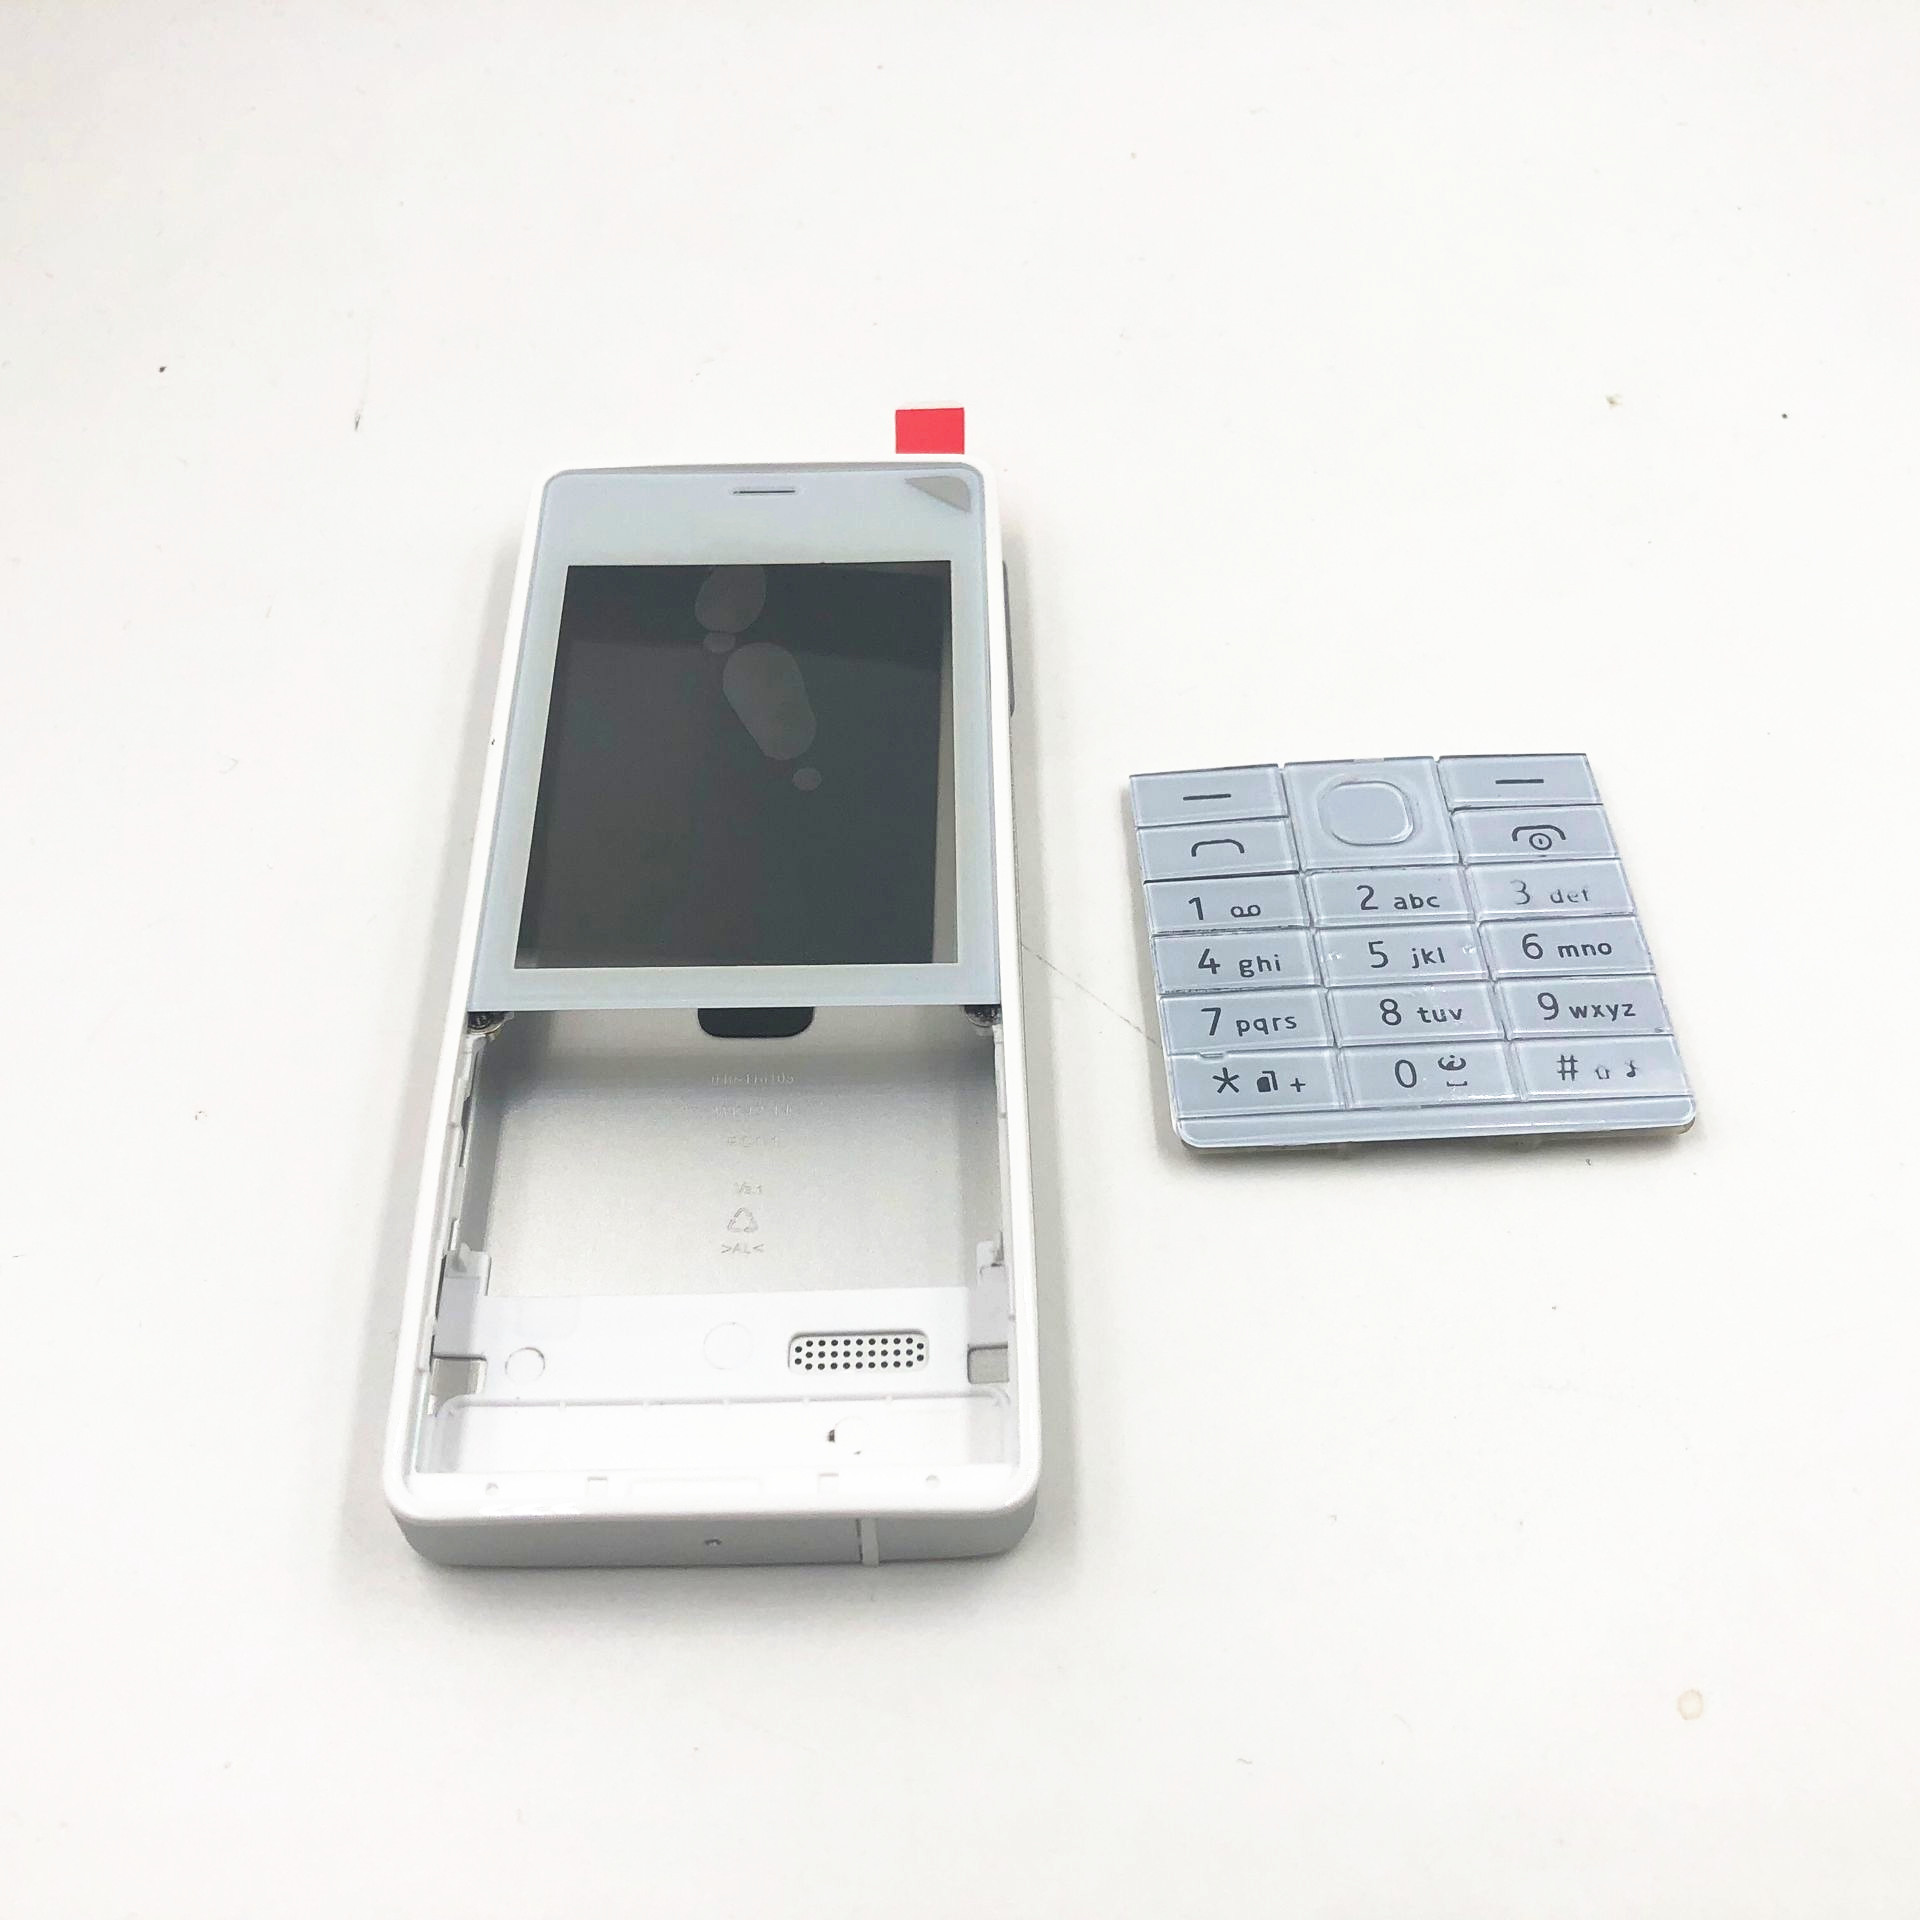 RTBESTOYZ New Front Frame Battery Door Back Cover Housing Case For Nokia 515 RM-952 With Volume Button+english Keyboard